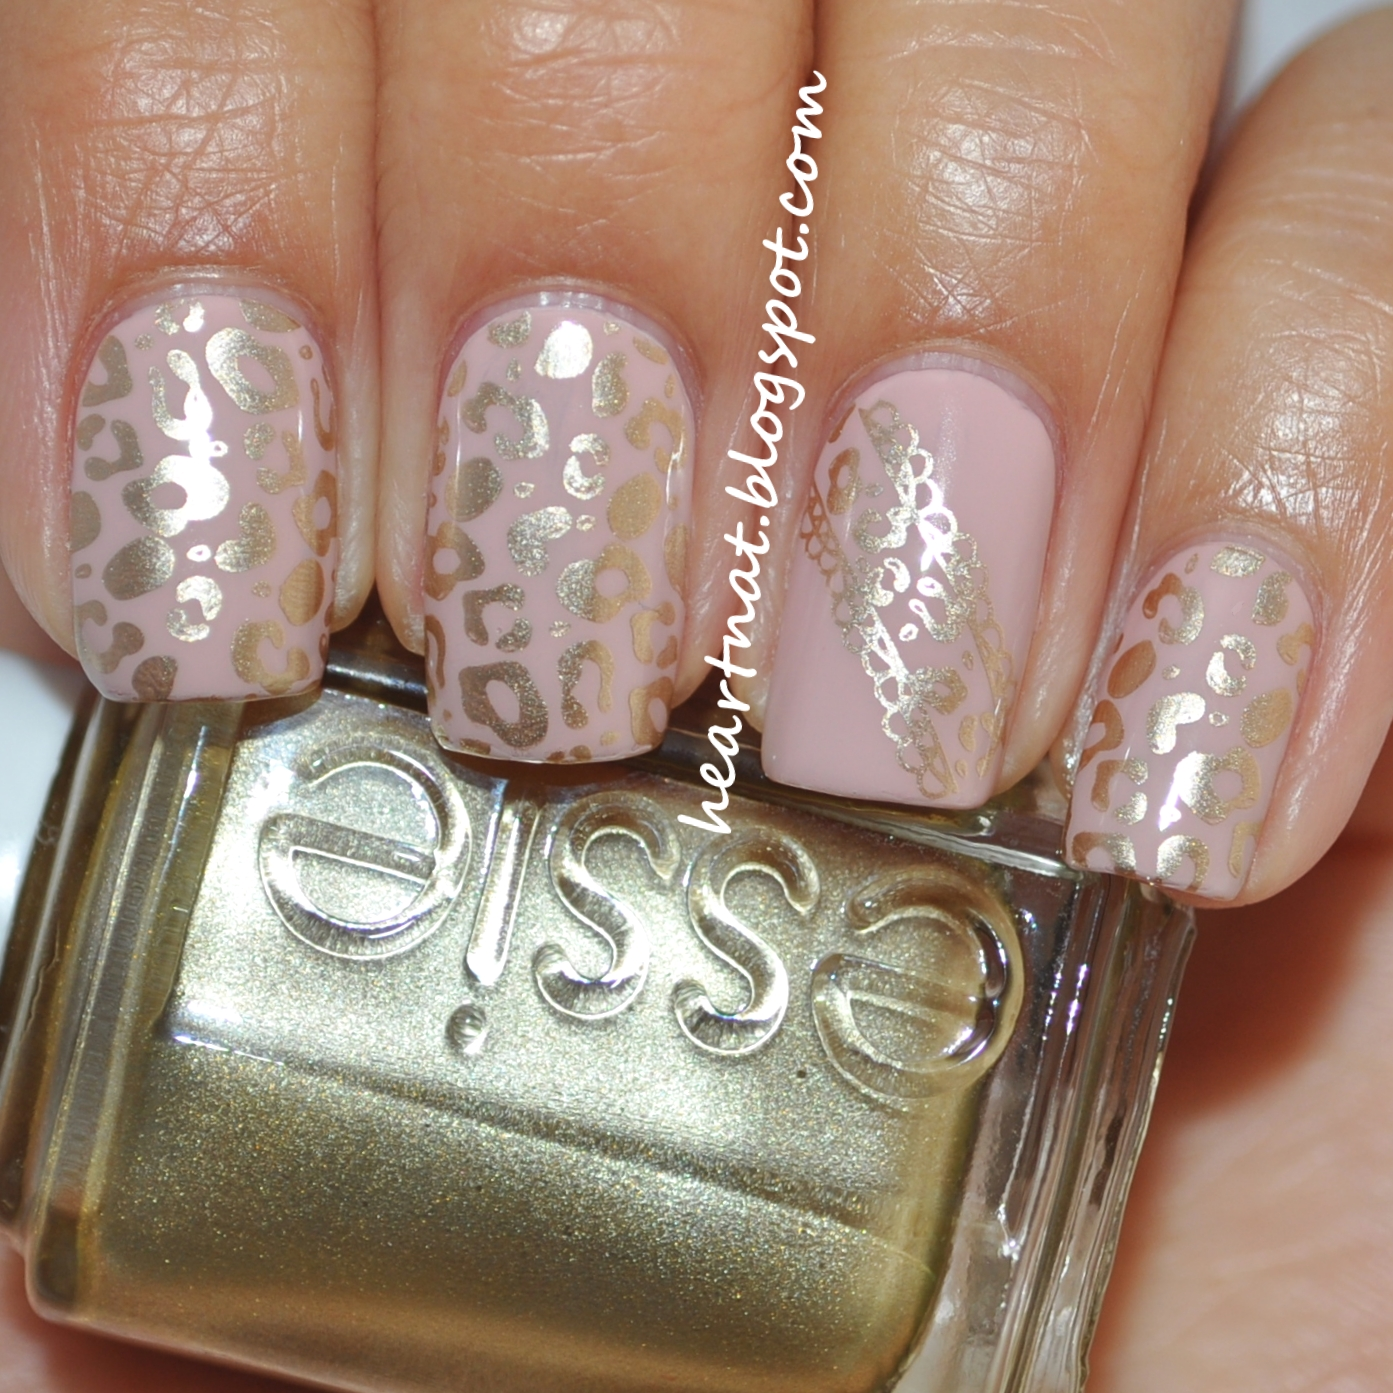 Good Essie as gold stamping